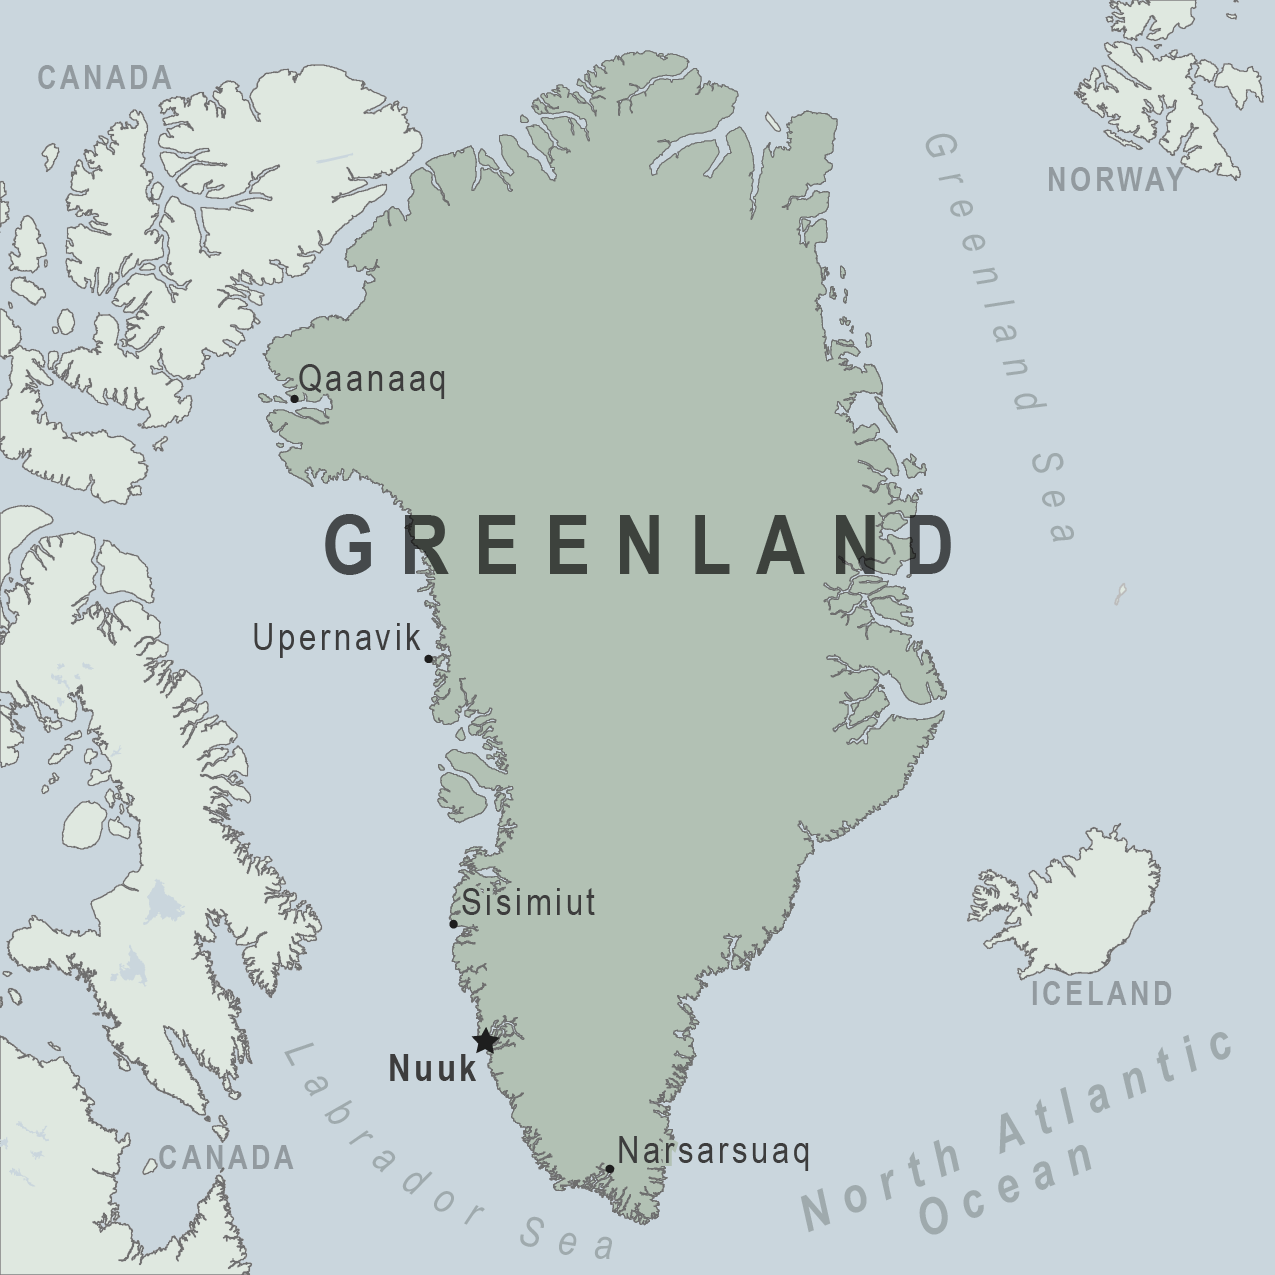 Greenland Google Image Result For Httpwwpgreenwichmeantime - Us canda greenland map with counties